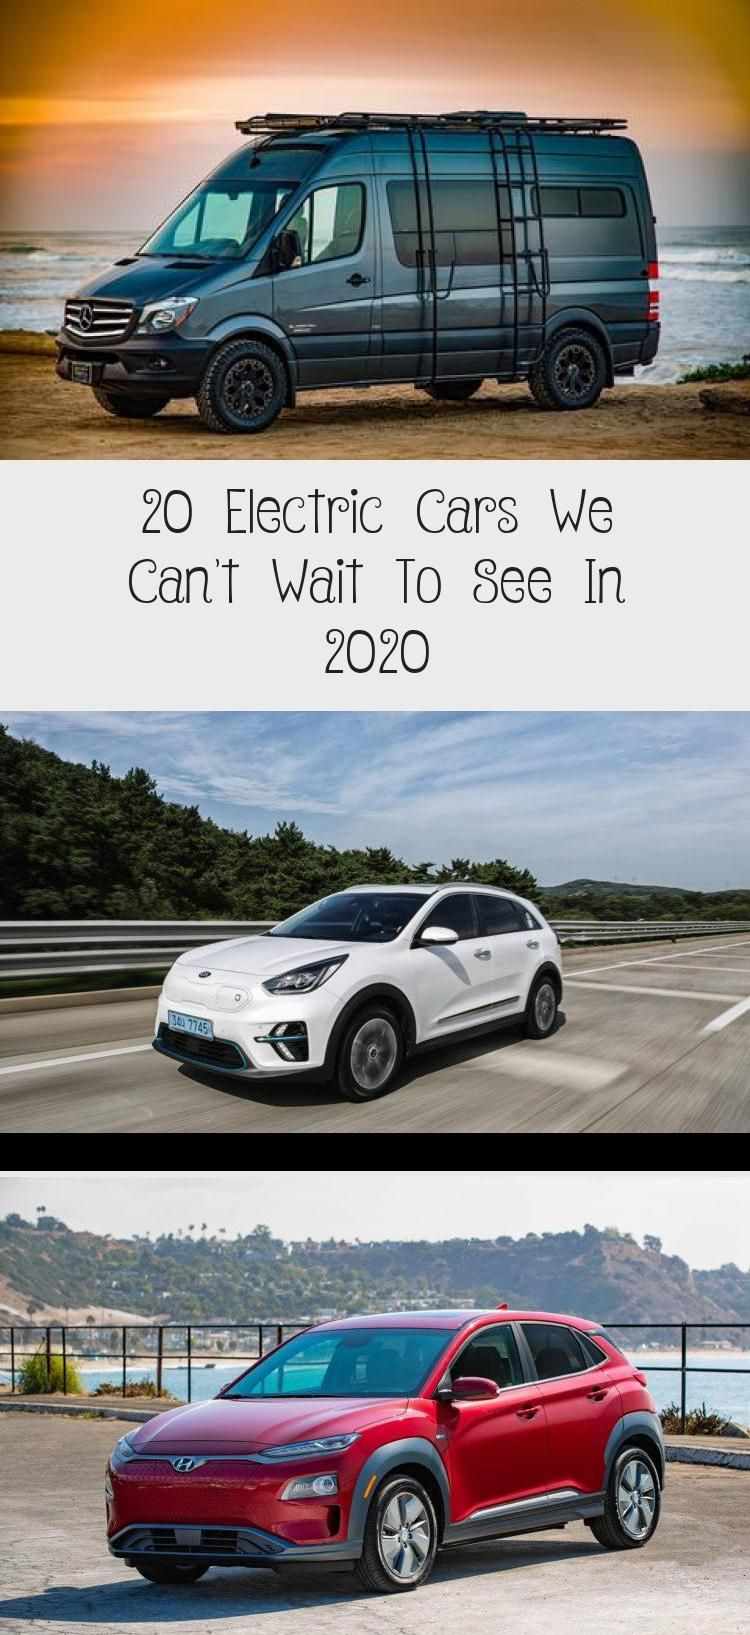 20 Electric Cars We Can't Wait To See In 2020 Technology